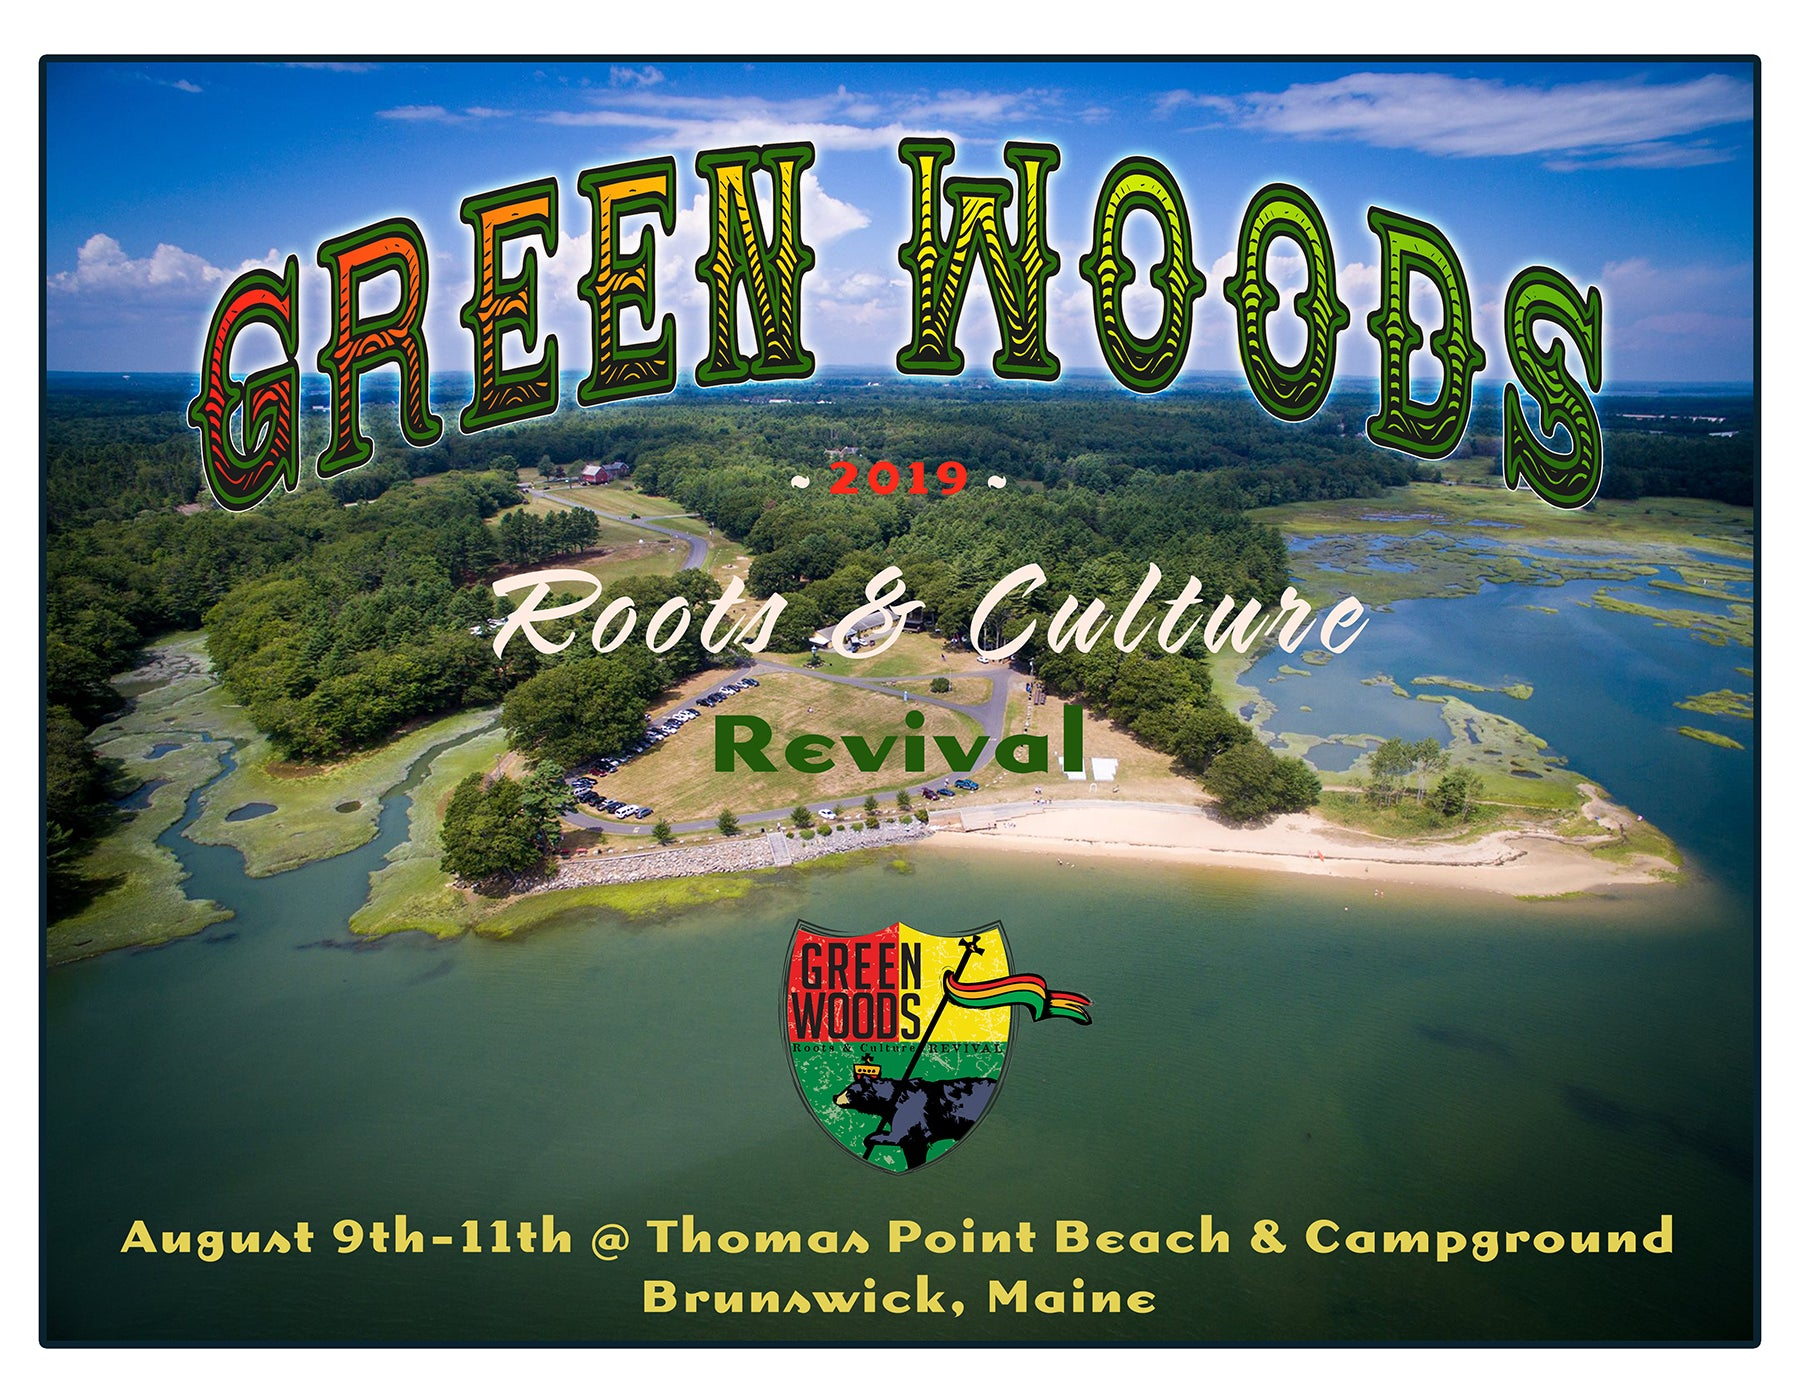 2019 Green Woods Roots & Culture Revival- Day Passes